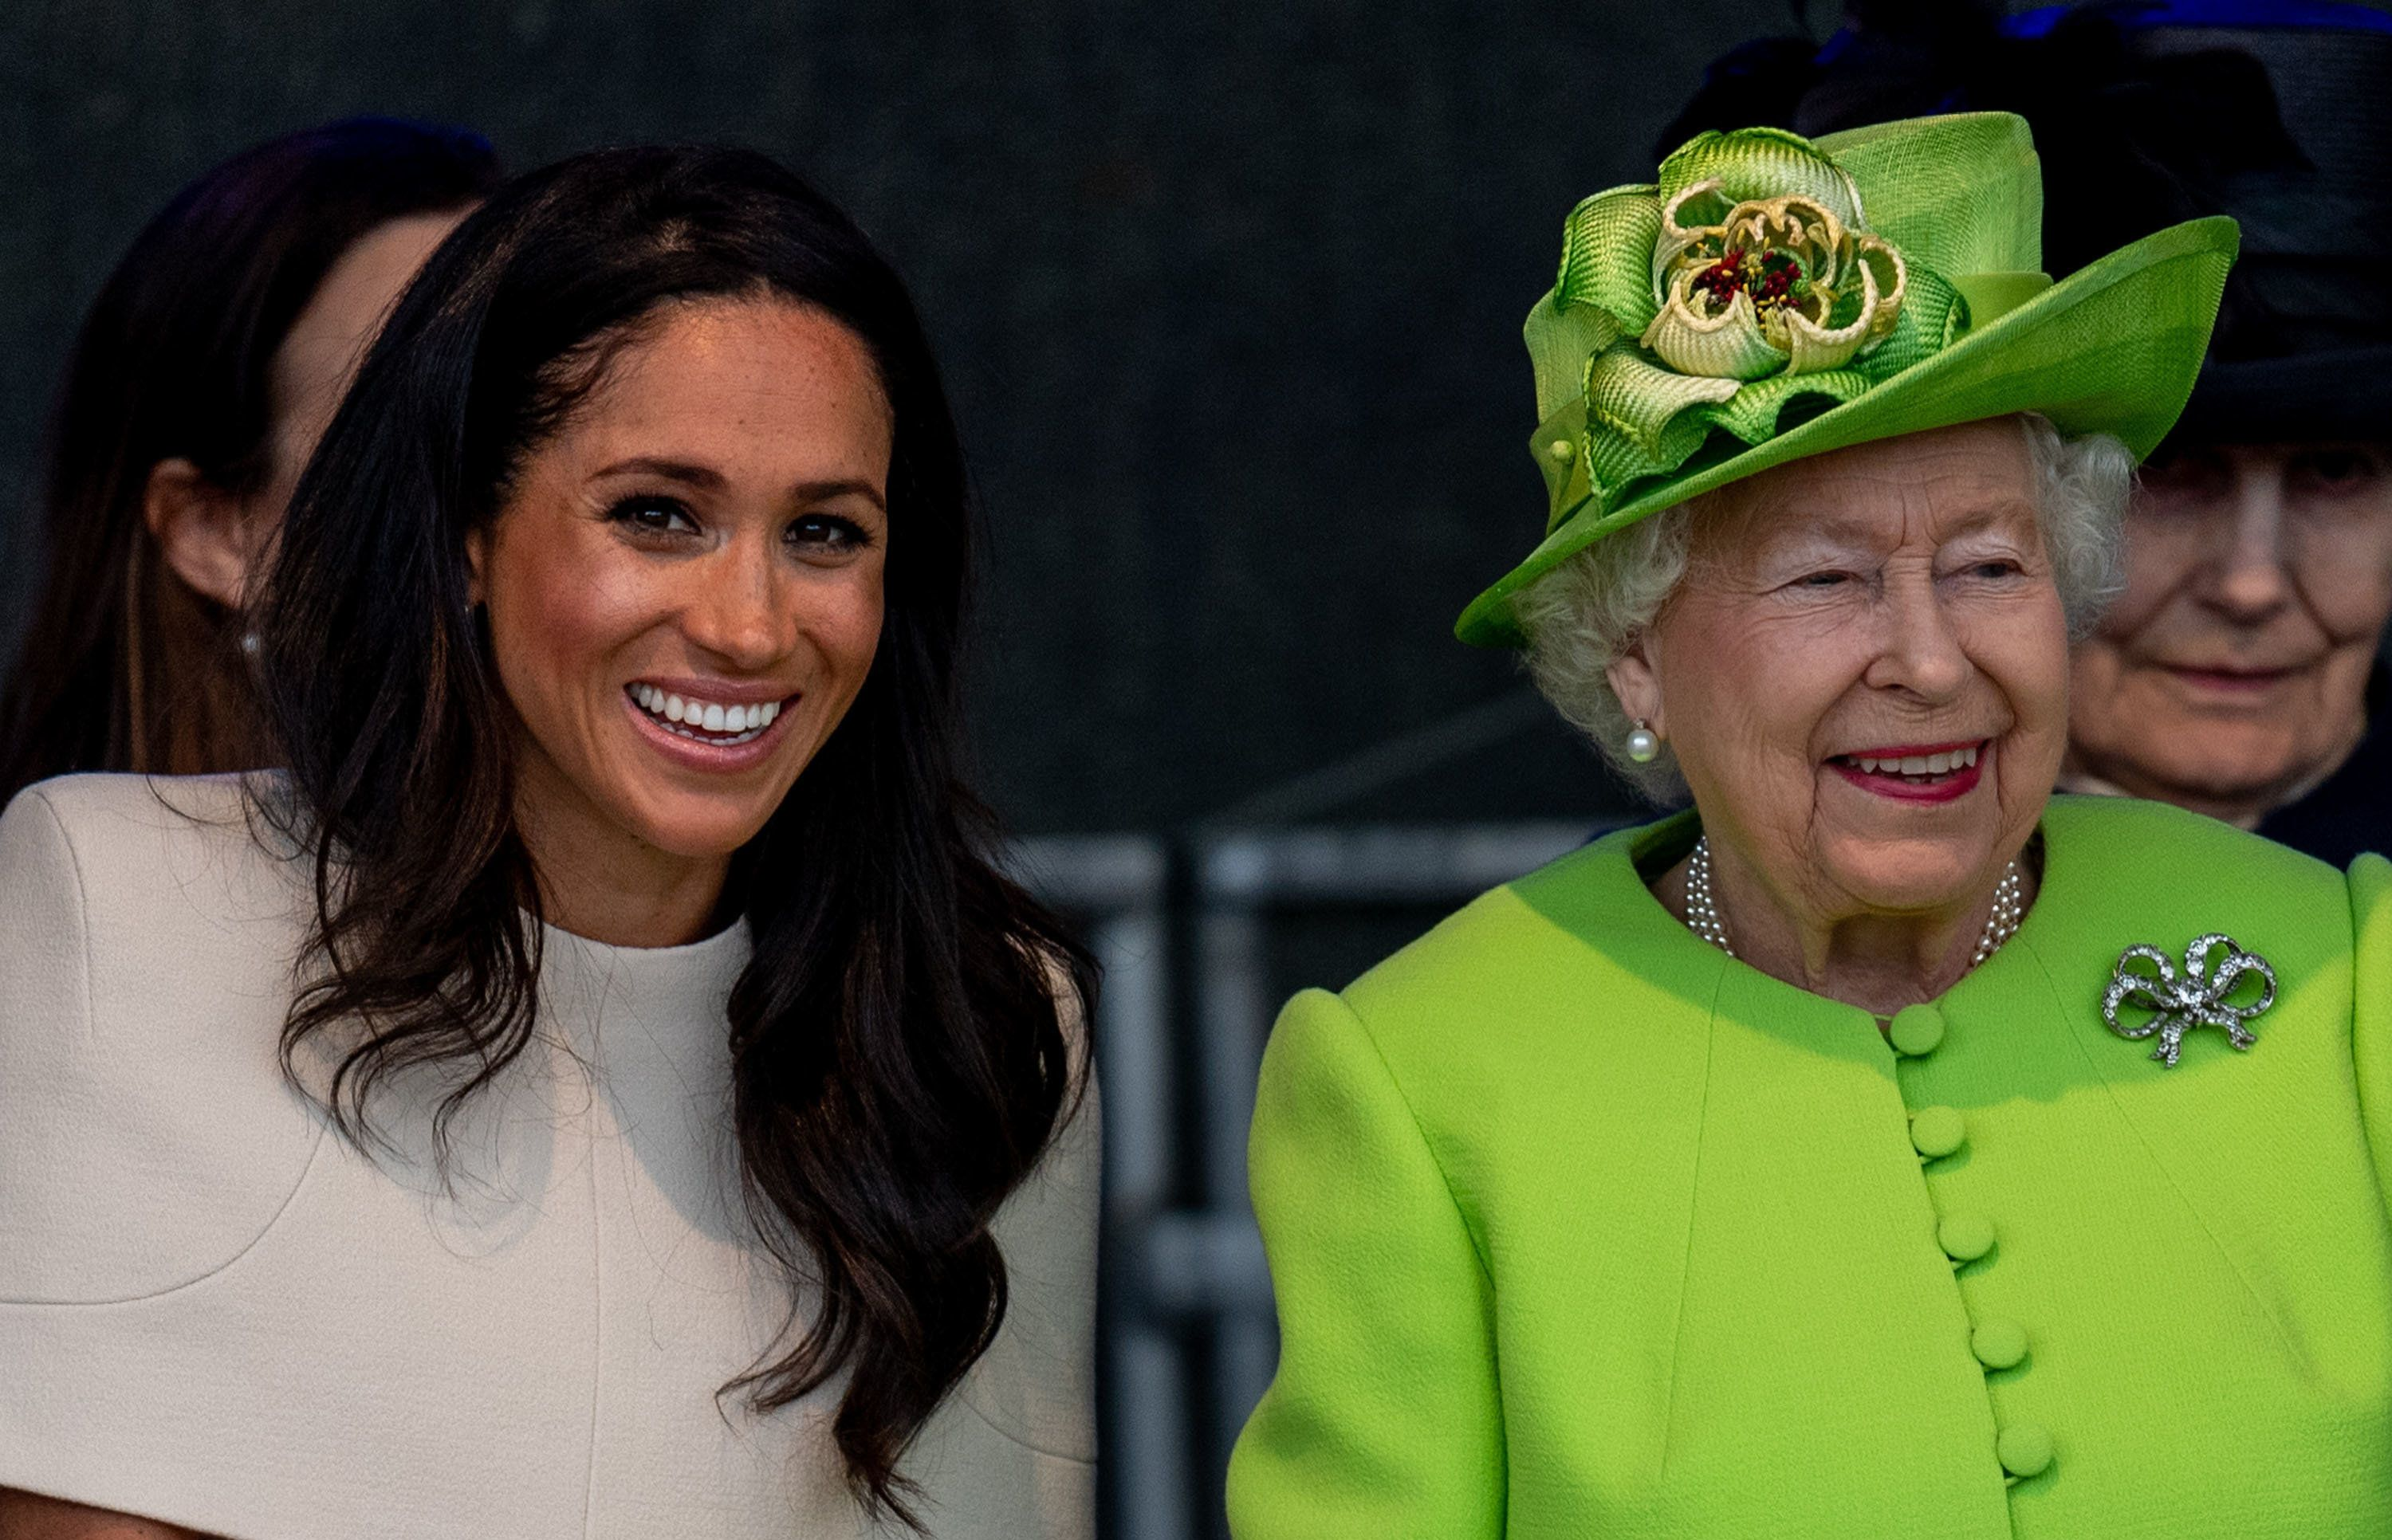 WIDNES, ENGLAND - JUNE 14: Queen Elizabeth II and Meghan, Duchess of Sussex  during a visit to the Catalyst Museum by the Mersey Gateway Bridge on June 14, 2018 in Widnes, England. Meghan Markle married Prince Harry last month to become The Duchess of Sussex. This is her first engagement with the Queen. During the visit the pair will open a road bridge in Widnes and visit The Storyhouse and Town Hall in Chester. (Photo by Mark Cuthbert/UK Press via Getty Images)